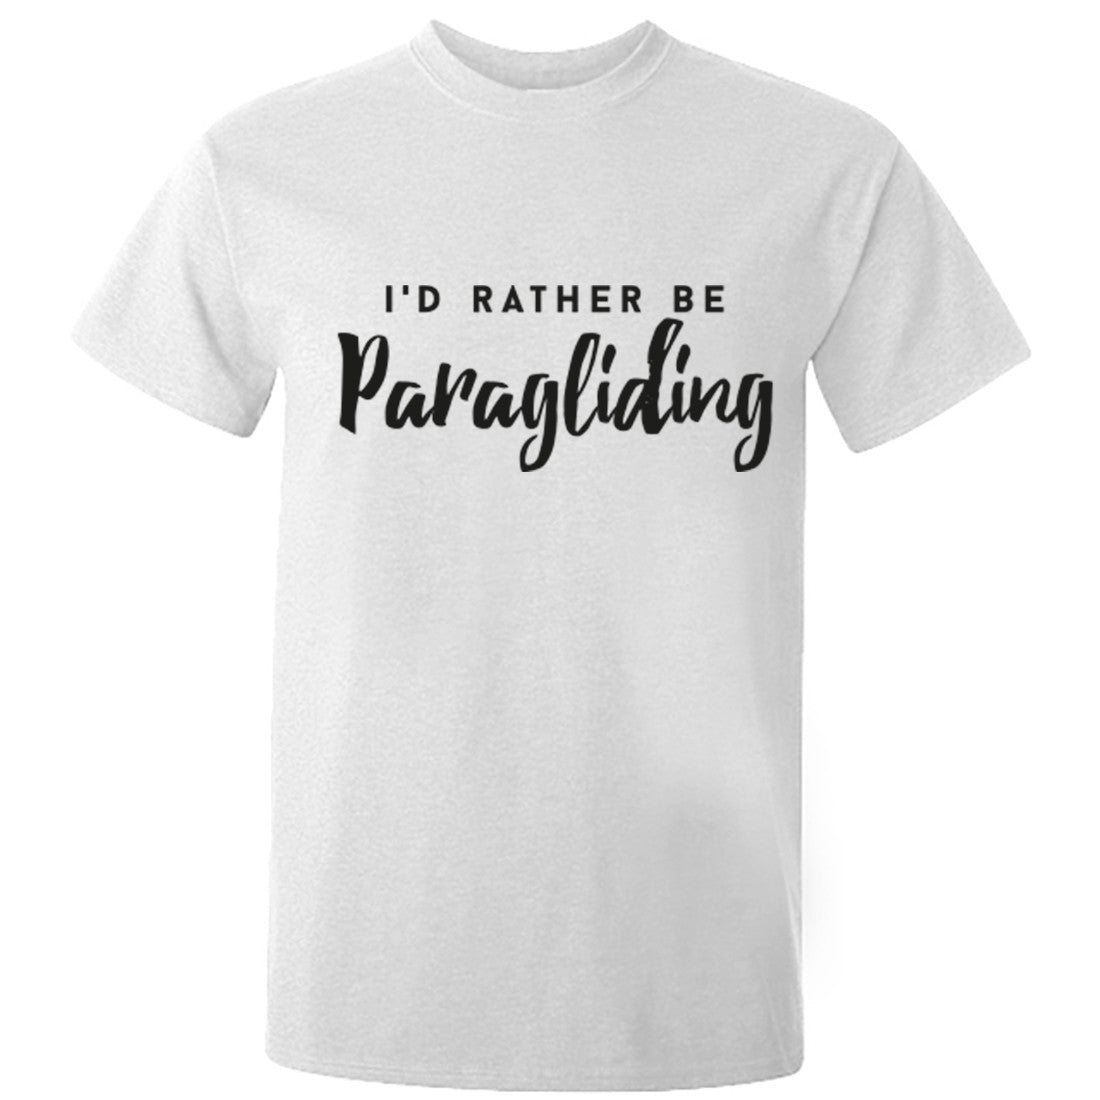 I'd Rather Be Paragliding unisex t-shirt K0207